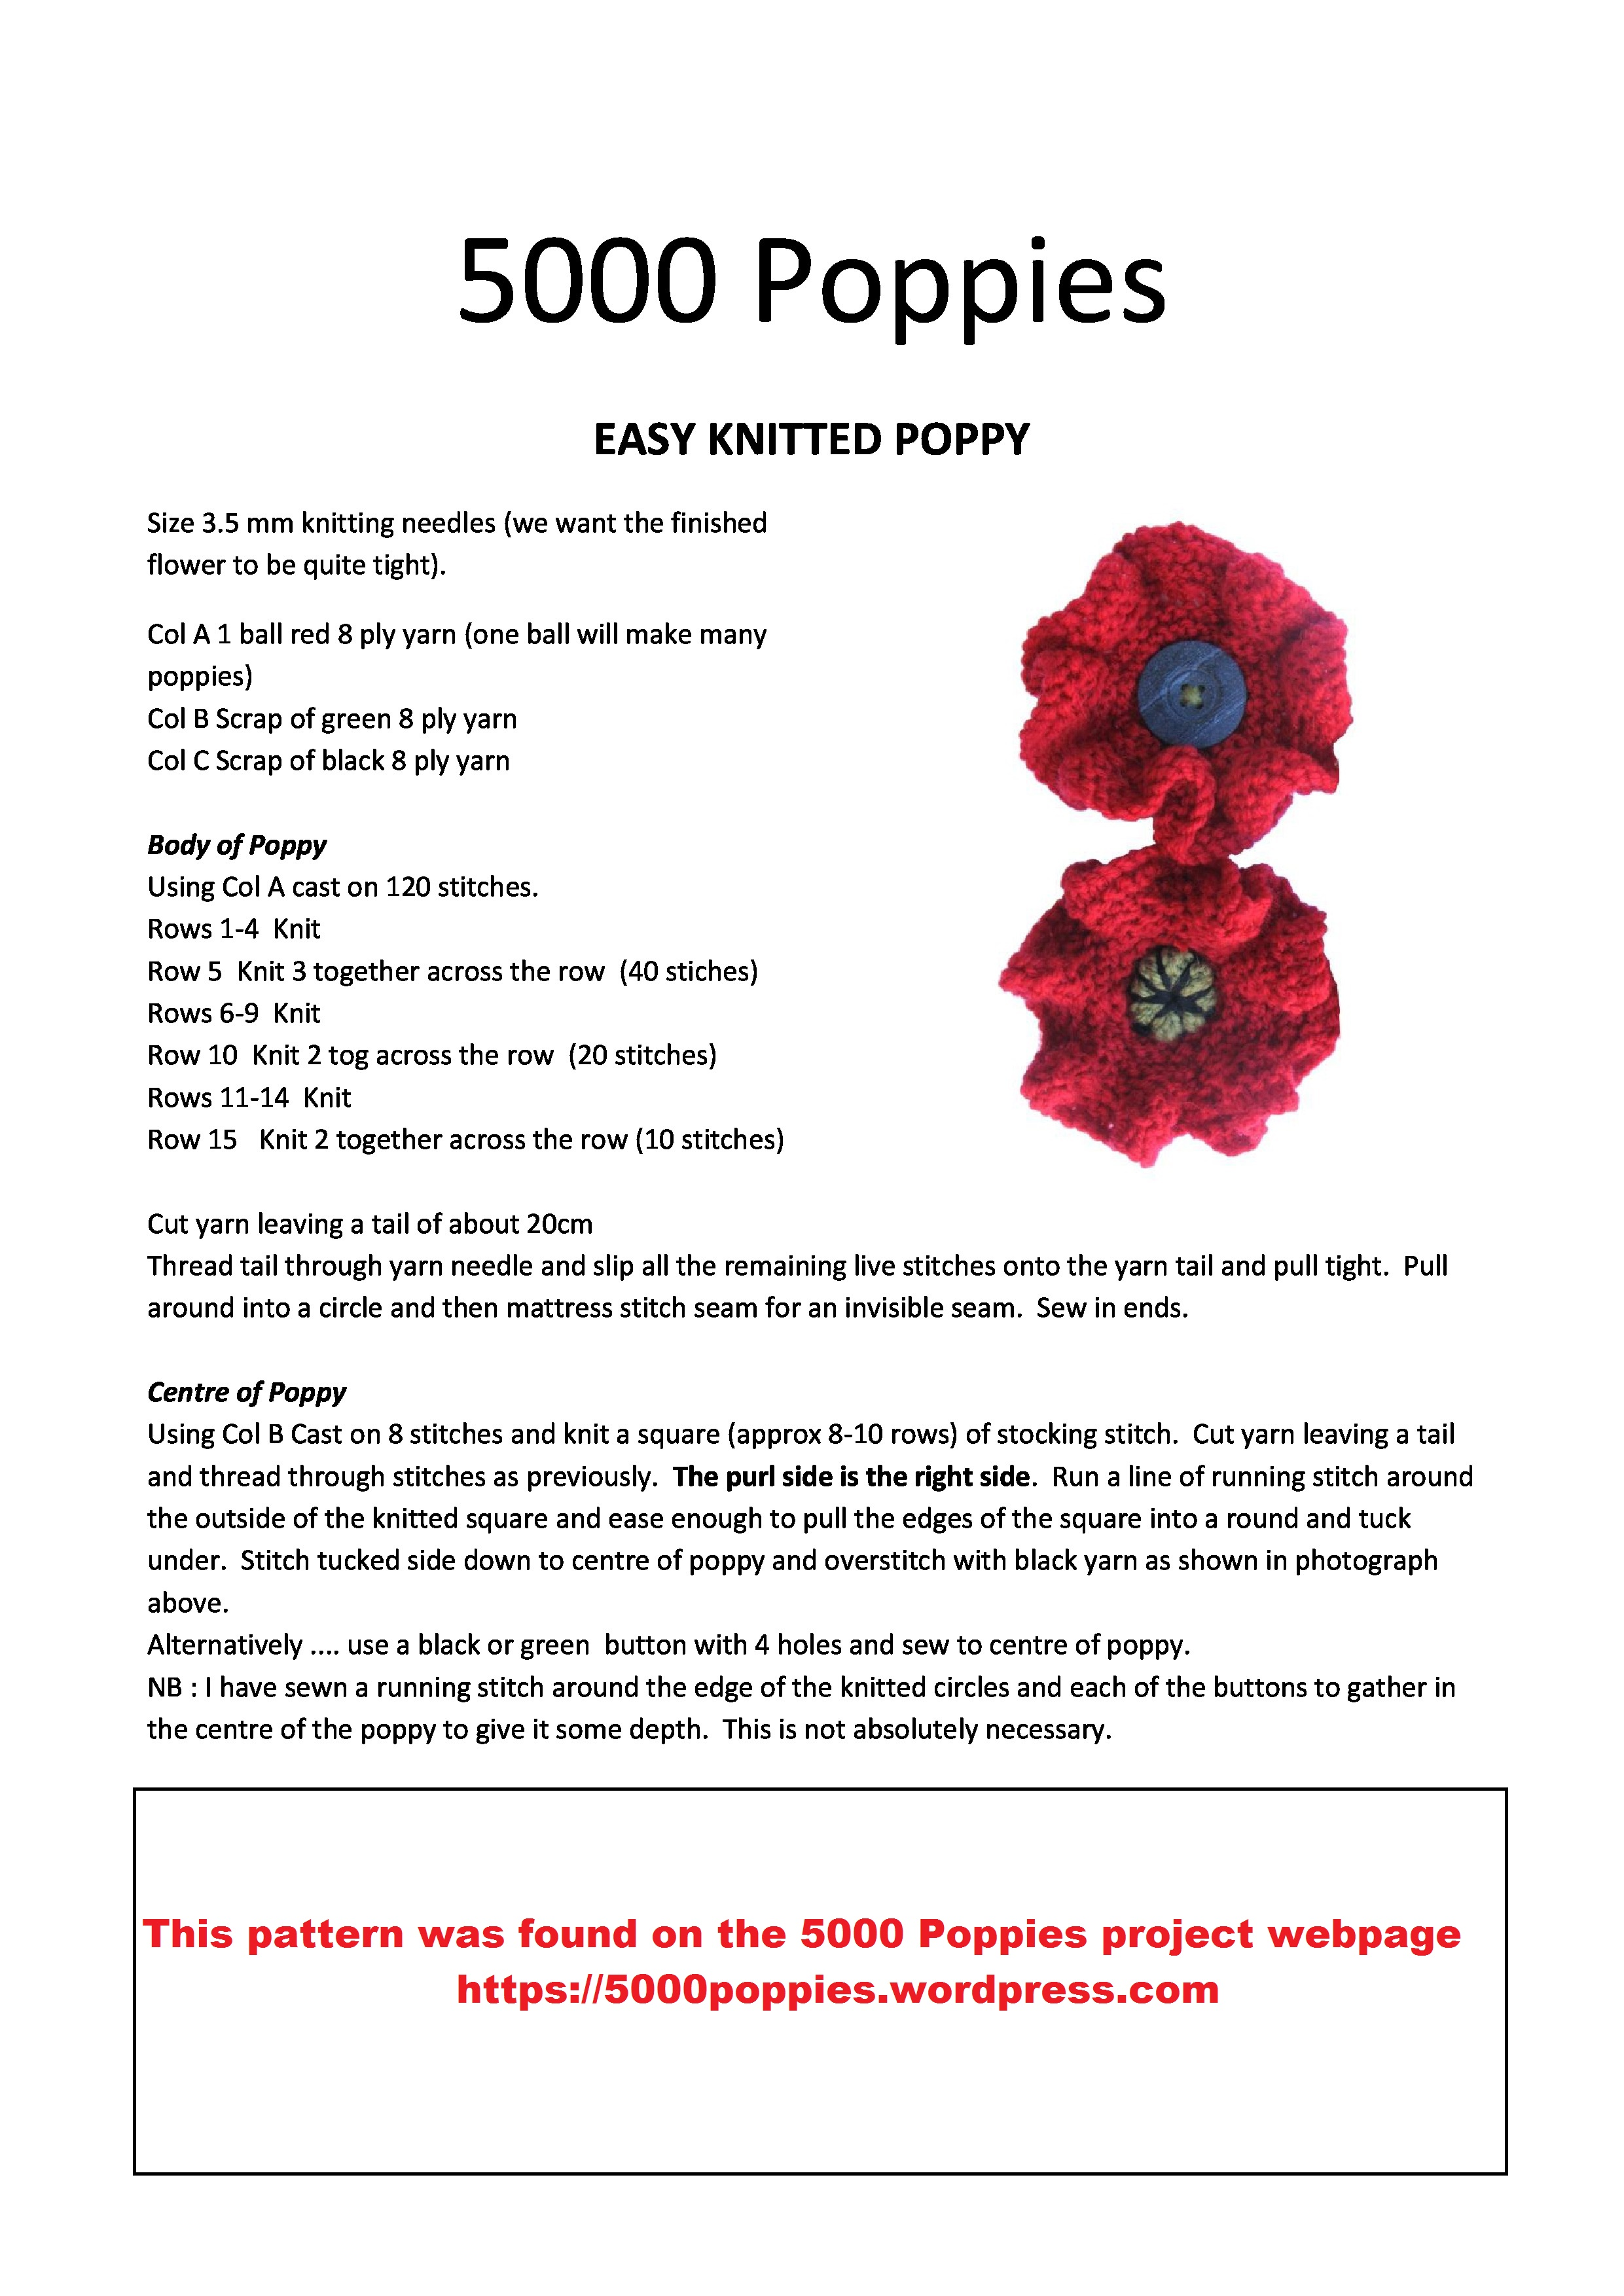 About the 2018 Poppy Project – Norfolk in World War One